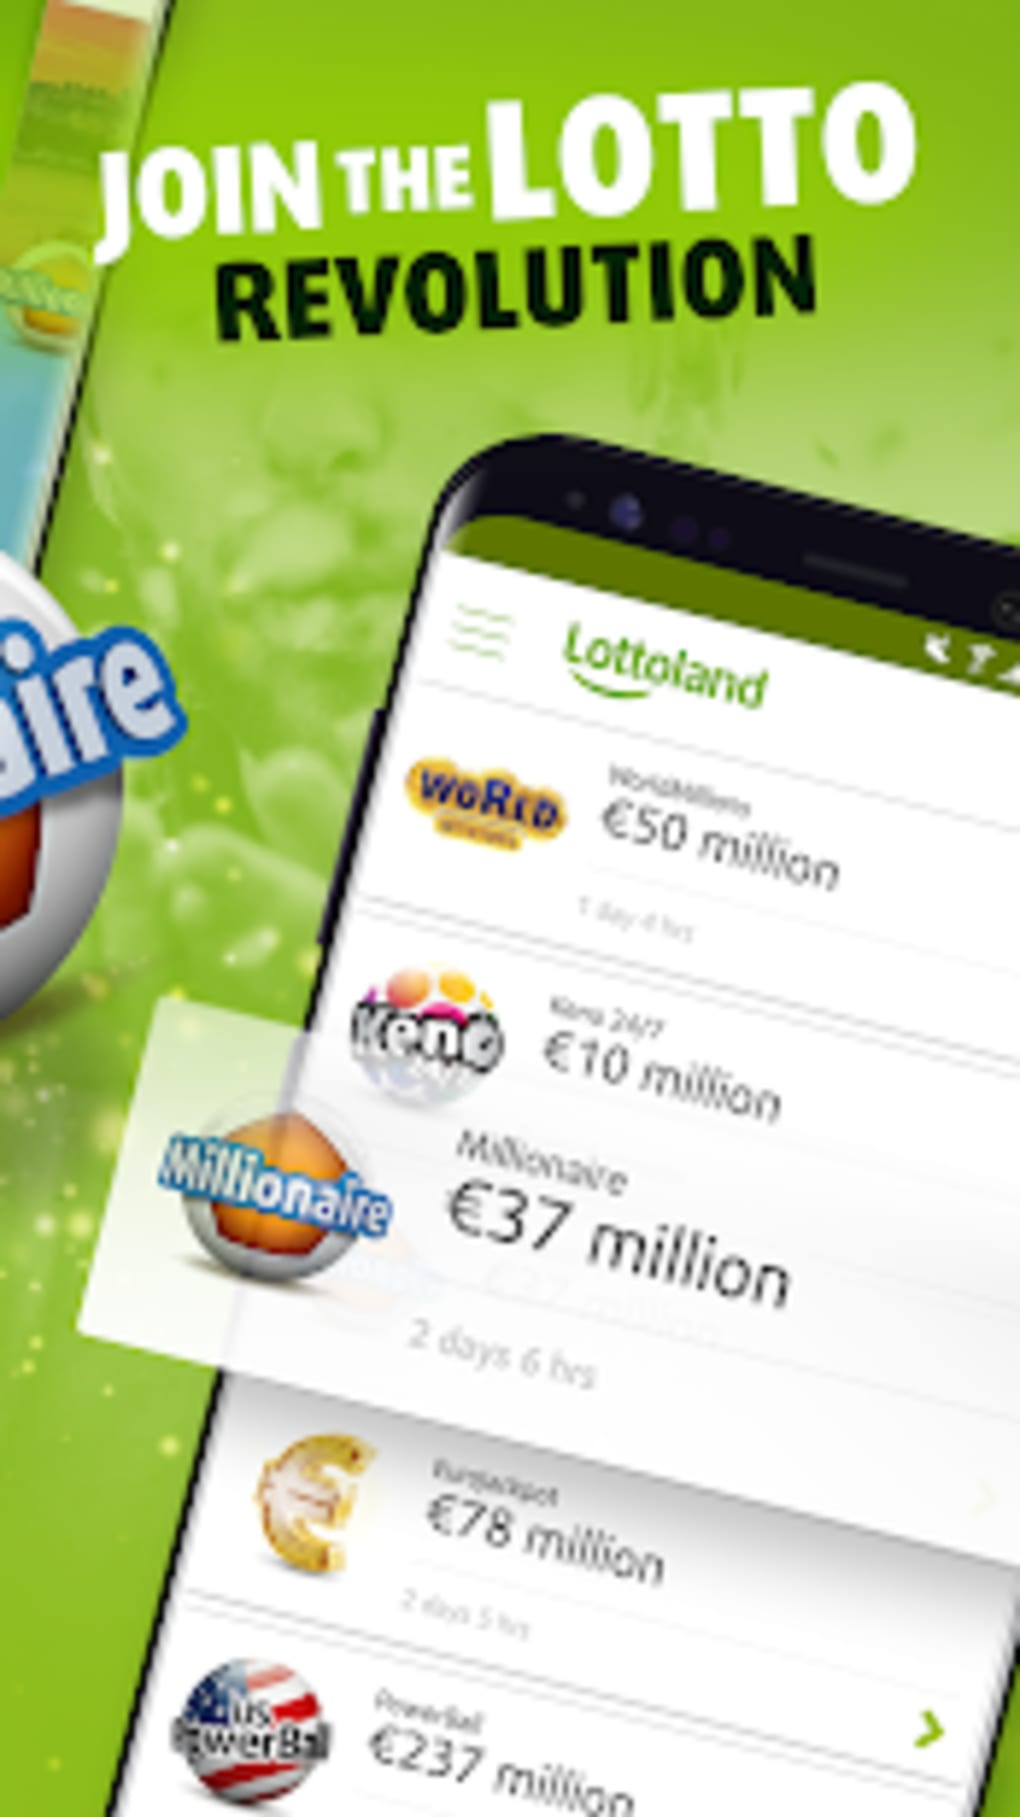 Lottoland: Bet on Lottery Results for Android - Download